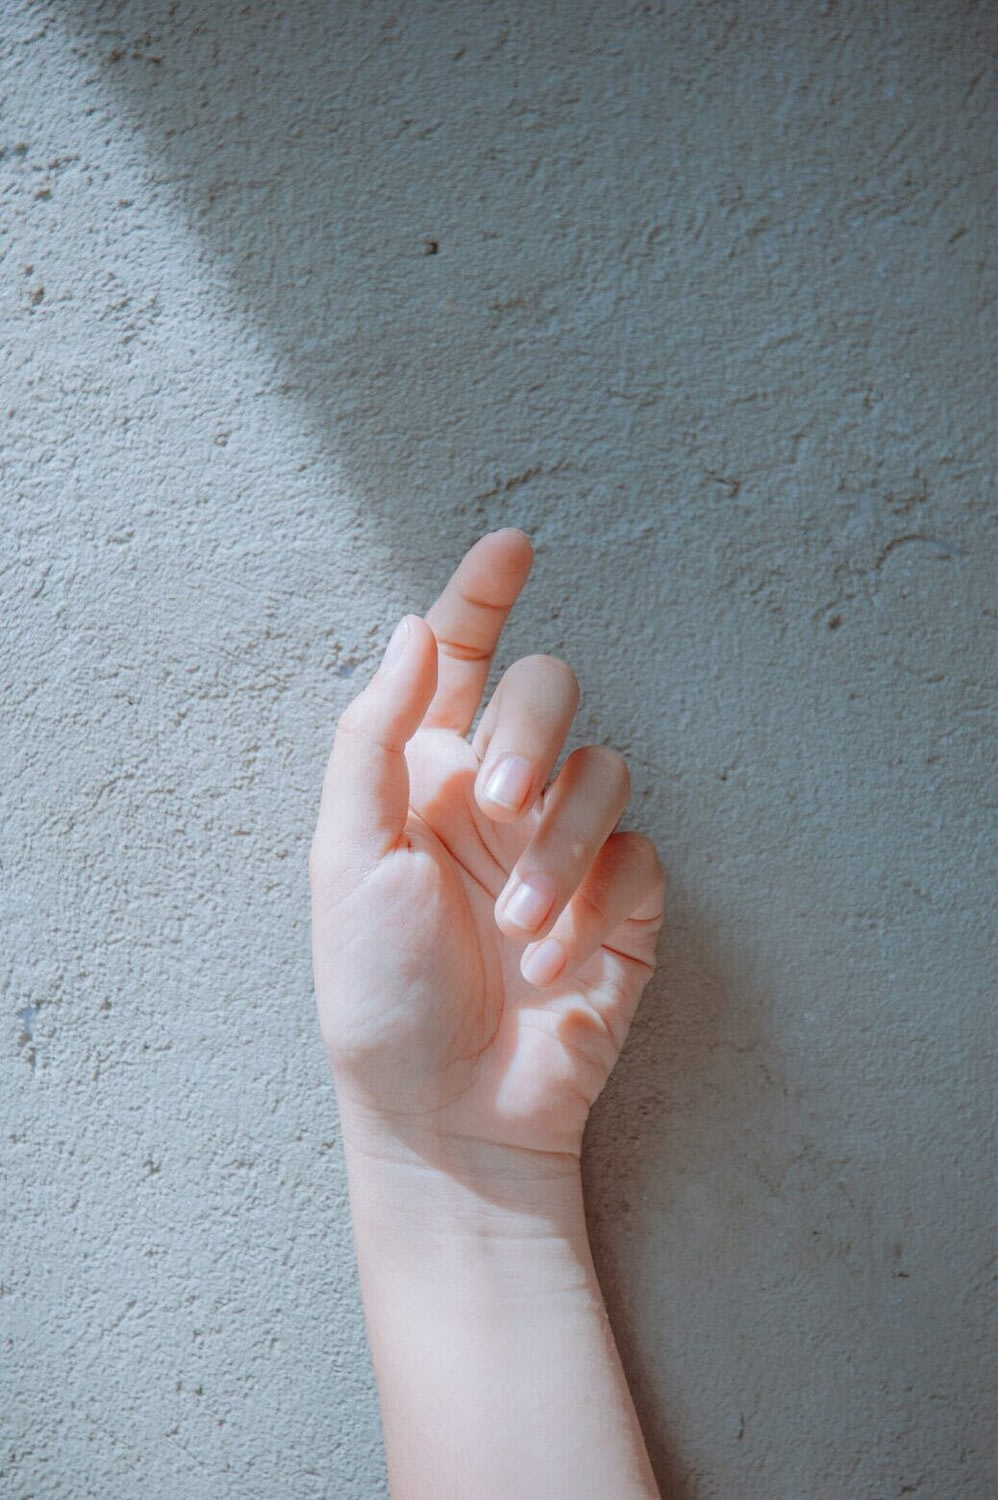 Treat Your Nails From Any Common Problem With 5 Home Remedies